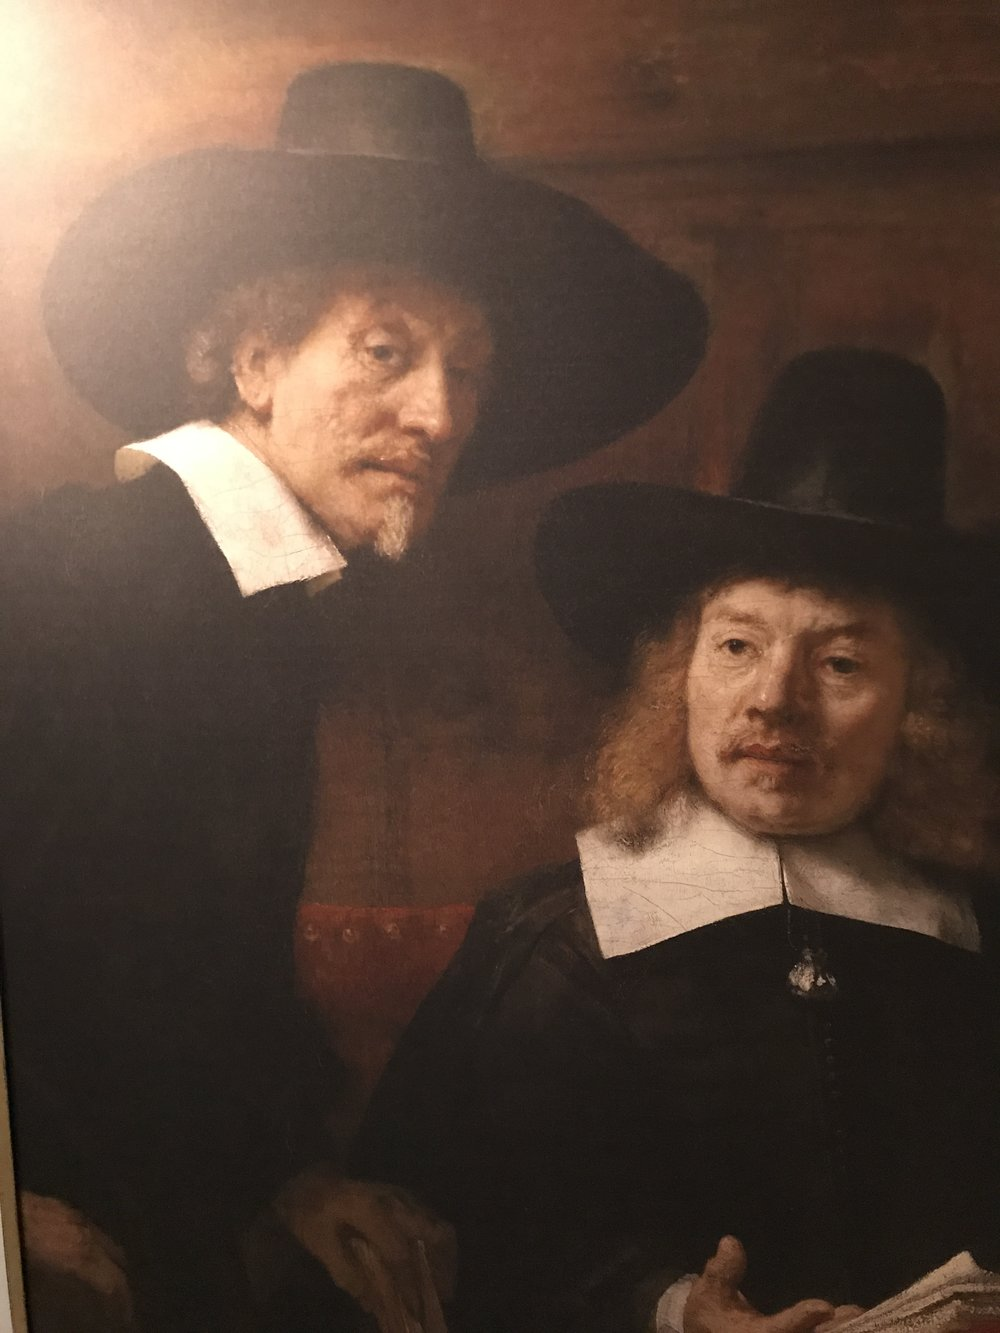 A copy of one of the wonderful oil Paintings by one of the Dutch Masters hangs in the Hall of the Restaurant ..